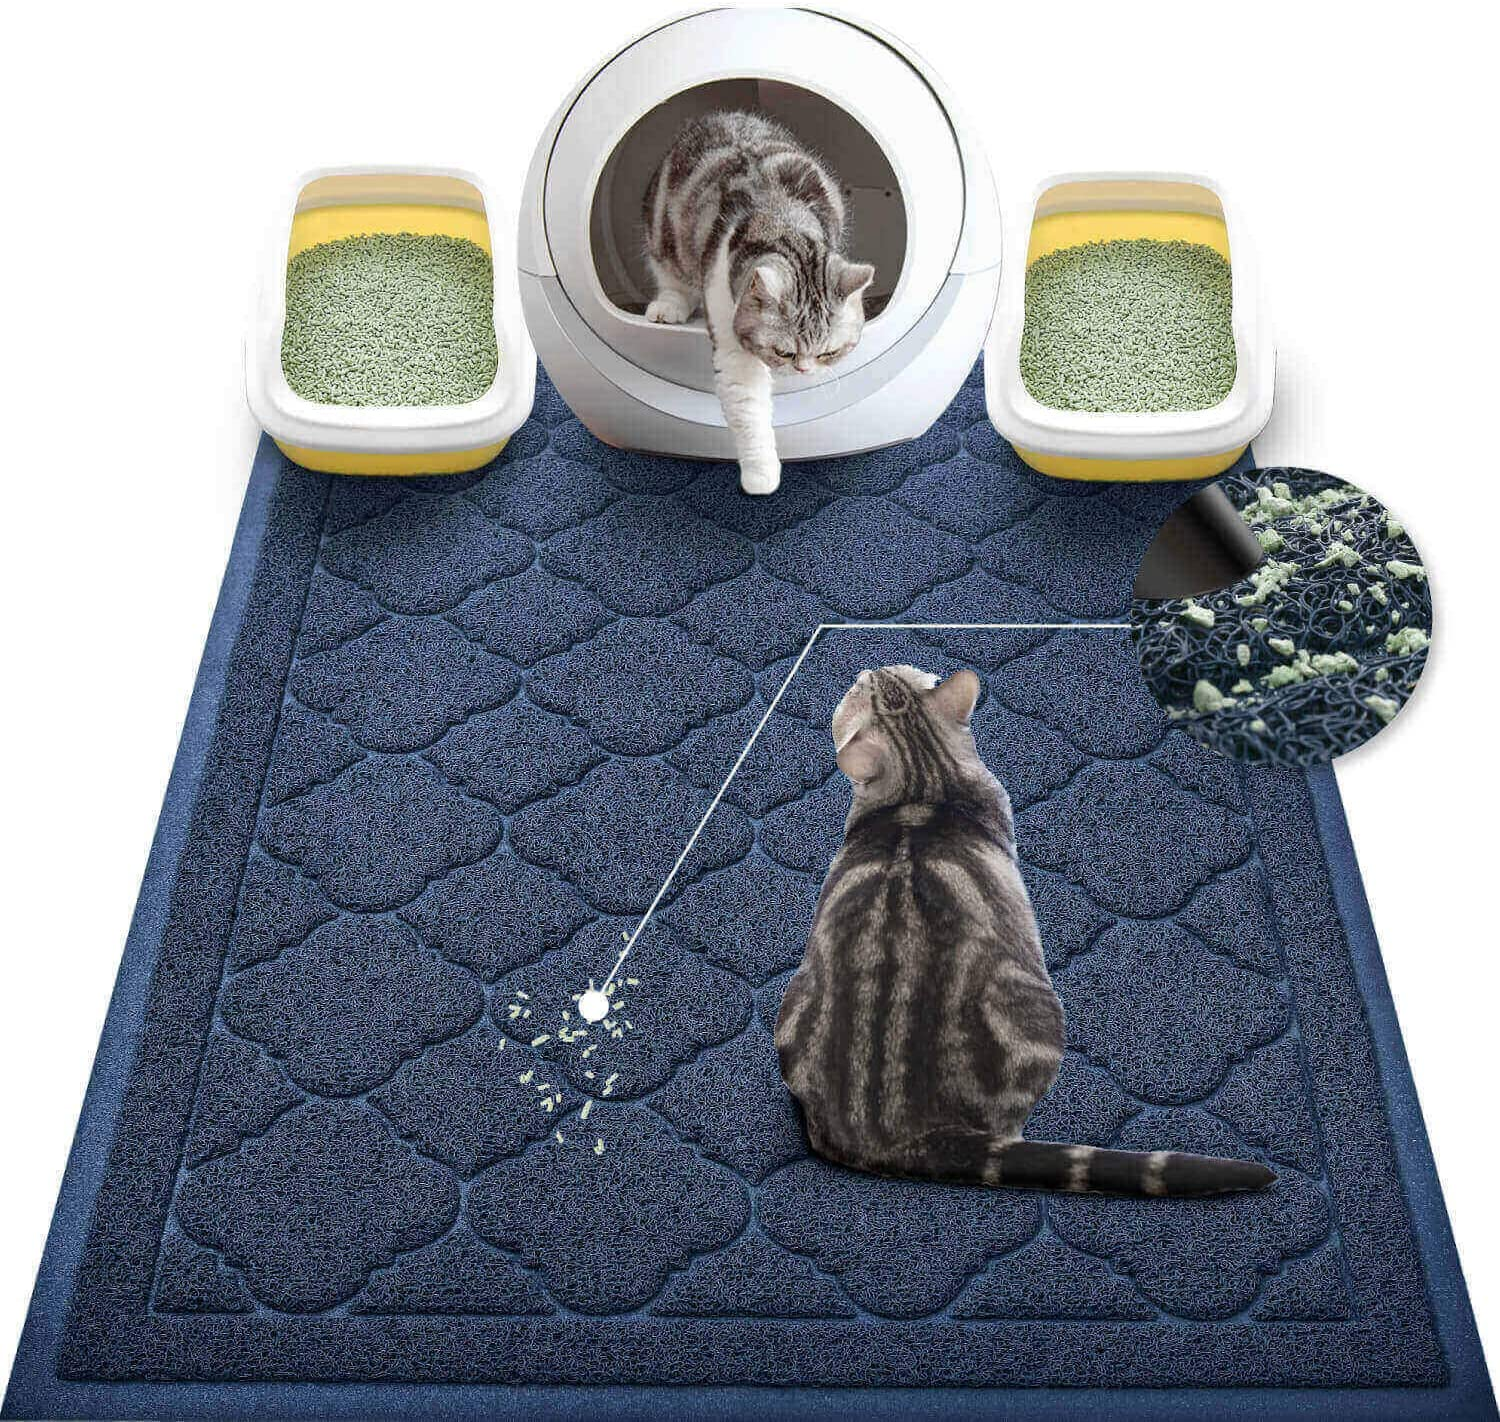 WePet Cat Litter Mat Jumbo, Kitty Litter Trapping Mess Mat, XXLarge Size, 47 x 36 Inch, Premium Durable Soft PVC Rug, No Phthalate, Urine Waterproof, Washable, Scatter Control, Litter Box Pad